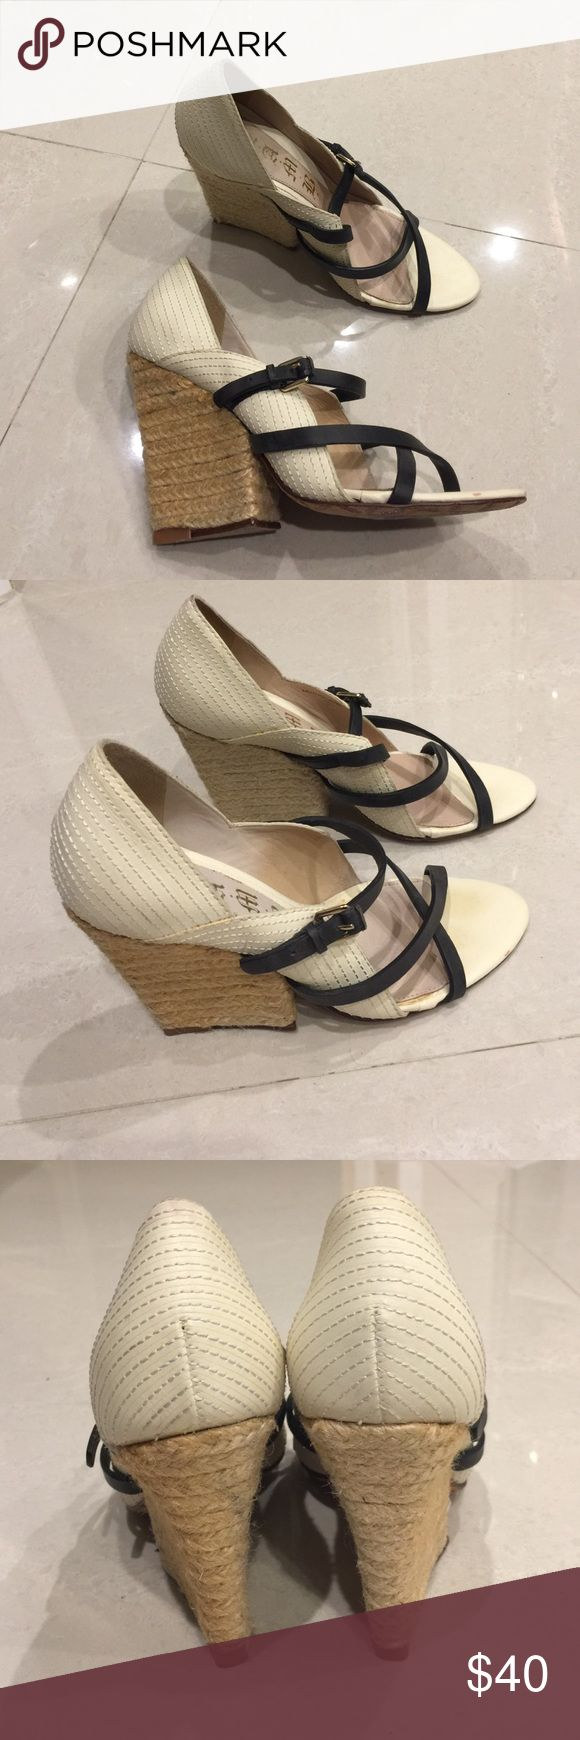 Lamb leather and rope heel shoes size 5 1/2 Sexy yet interesting rope heel shoes with white stitched and black leather. Size 5 1/2 in great condition as I only wore them once for about 1 hour at the most. They definitely need a loving closing, as they are a great pair or shoes. Lamb Shoes Heels